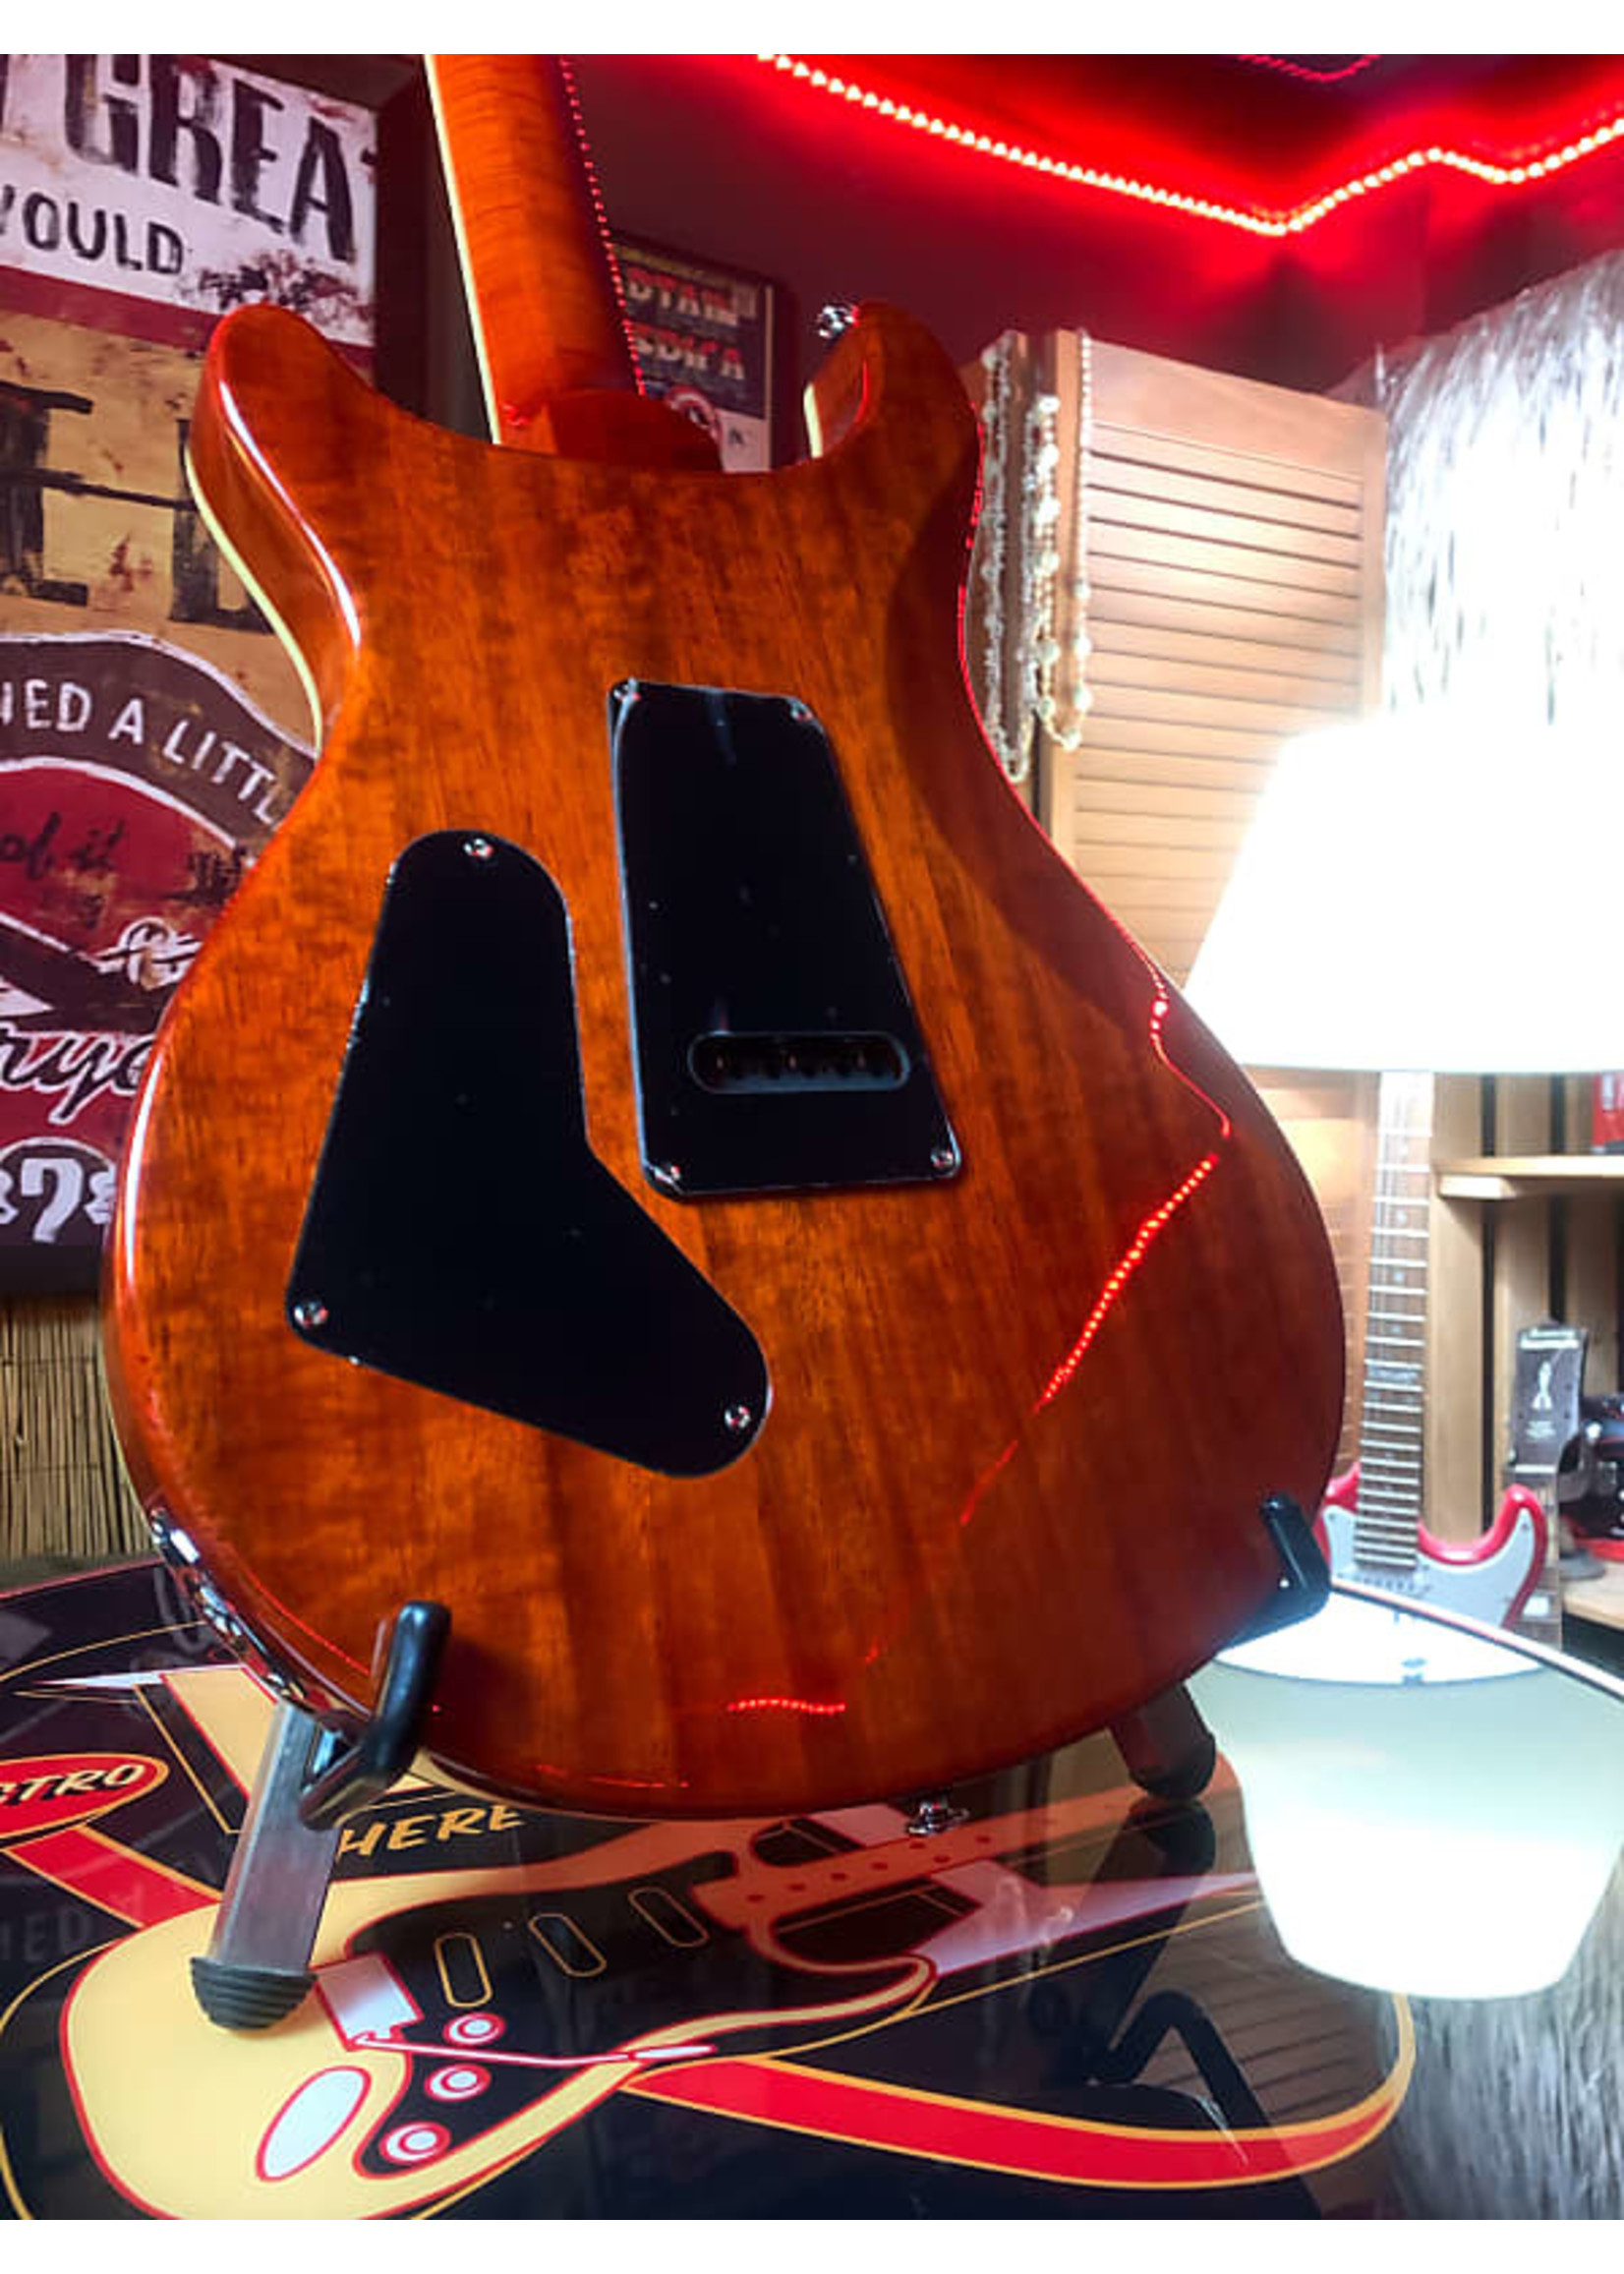 Paul Reed Smith Paul Reed Smith SE Custom 24 in Exotic Laurel finish